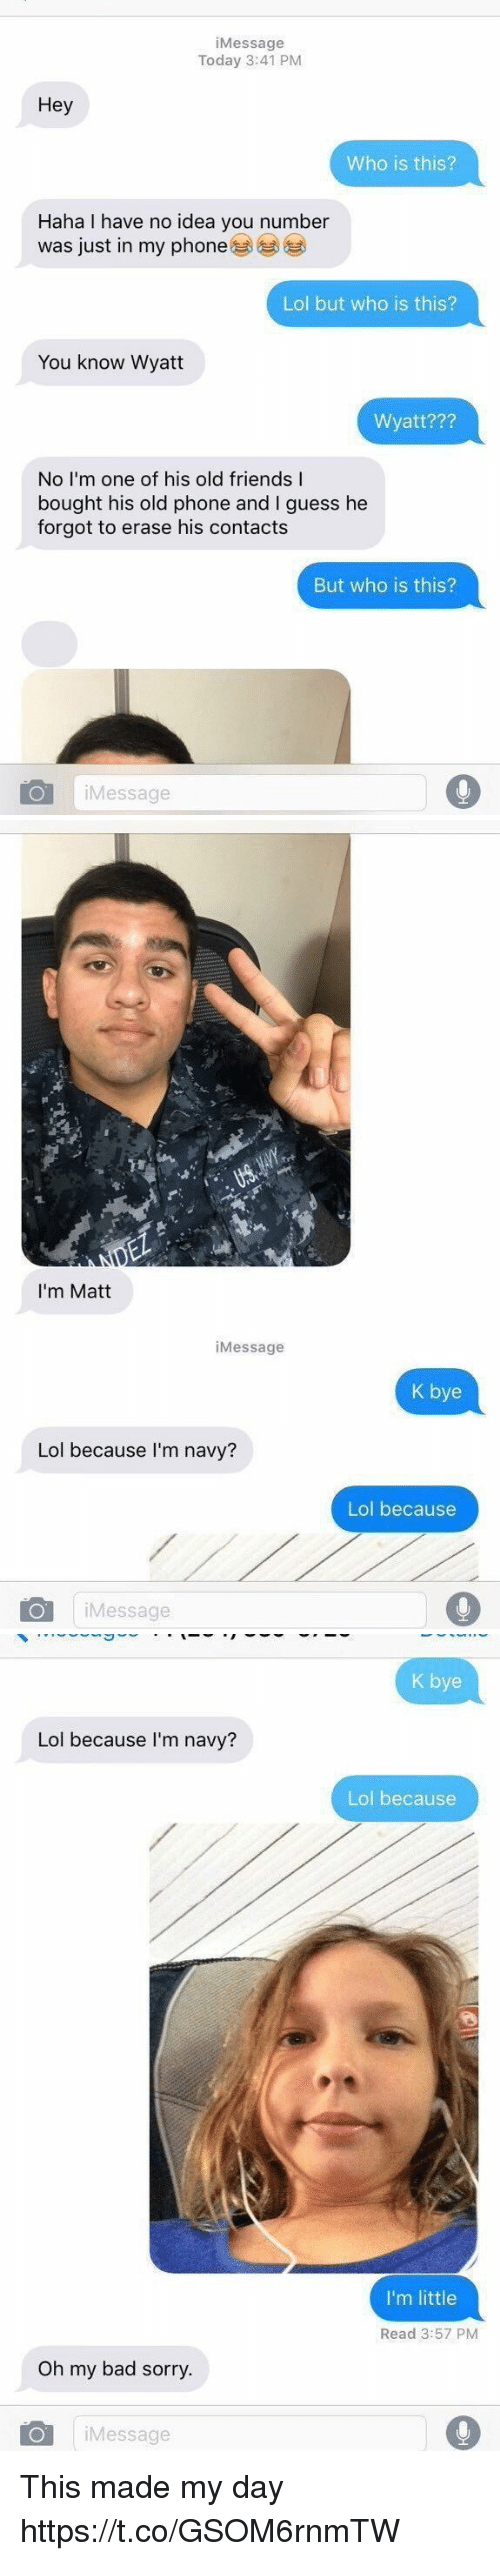 Bad, Friends, and Lol: iMessage  Today 3:41 PM  Hey  Who is this?  Haha I have no idea you number  was just in my phone  Lol but who is this?  You know Wyatt  Wyatt???  No I'm one of his old friends I  bought his old phone and I guess he  forgot to erase his contacts  But who is this?  iMessage   I'm Matt  iMessage  K bye  Lol because I'm navy?  Lol because  iMessage   K bye  Lol because I'm navy?  Lol because  I'm little  Read 3:57 PM  Oh my bad sorry.  iMessage This made my day https://t.co/GSOM6rnmTW